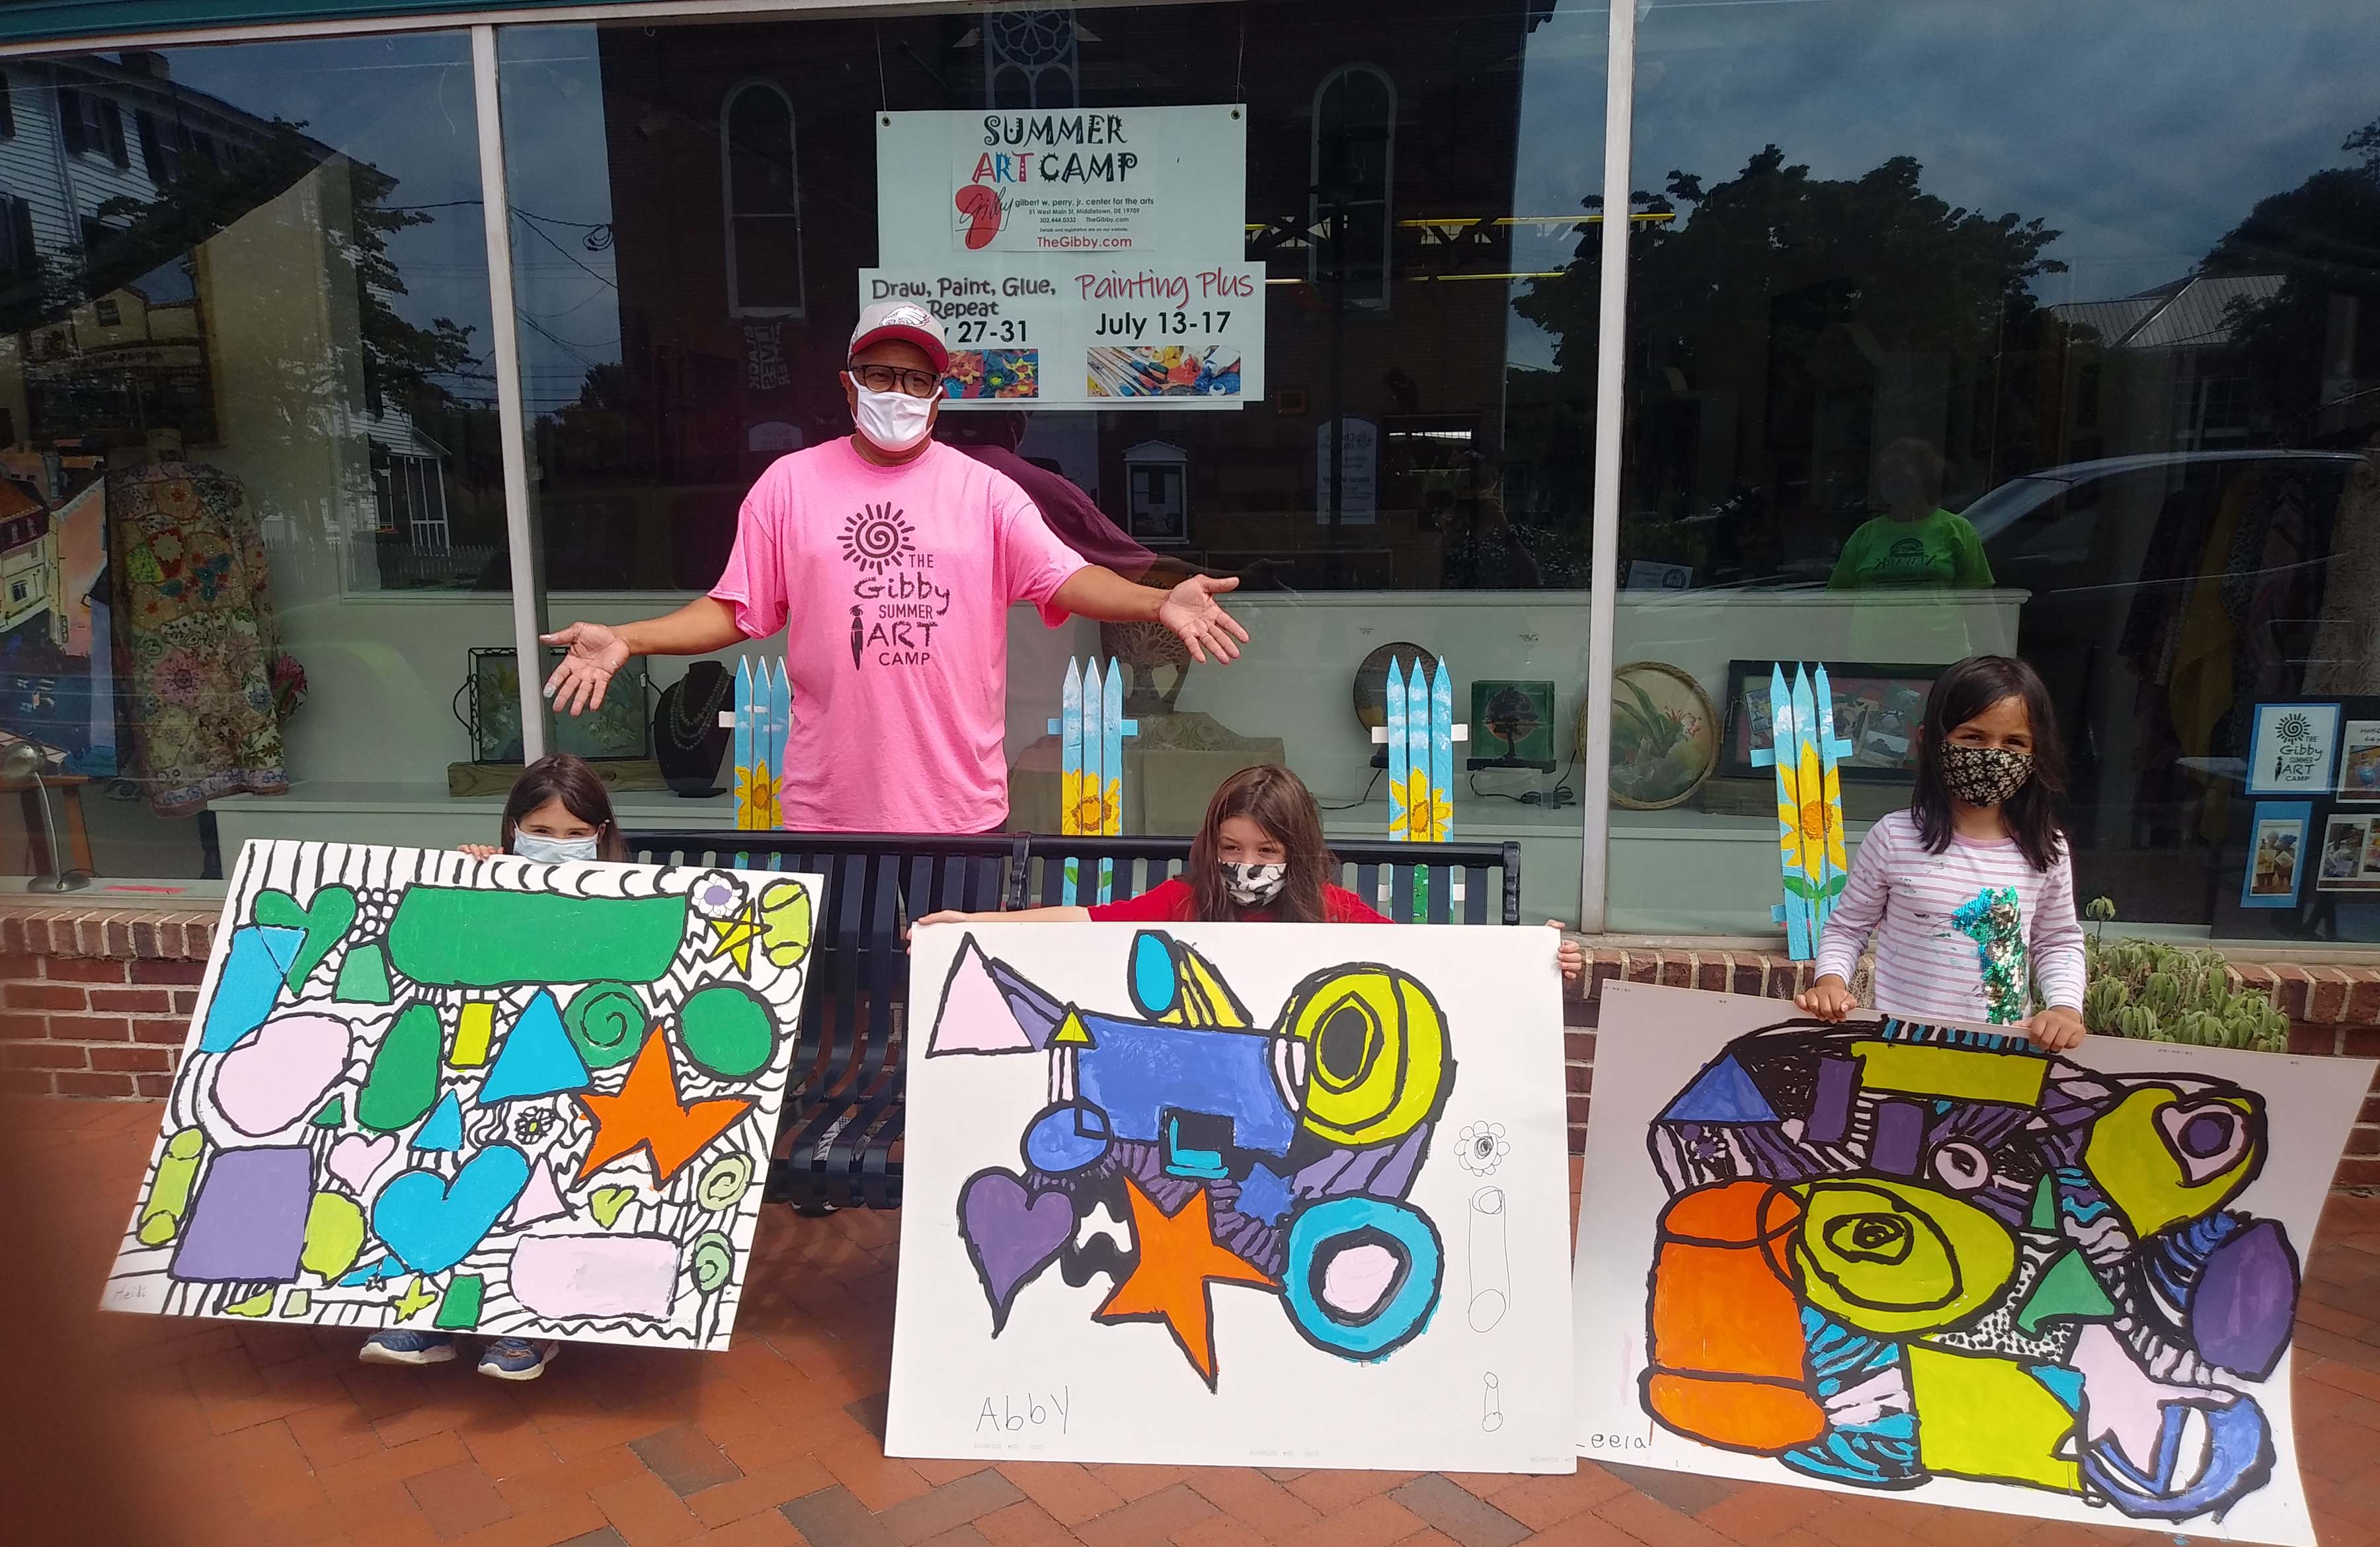 Milton Downing, 2021 Art Educator of the Year, stands with young summer camps participants and their painted creations at the Gibby Center for the Arts in Middletown.